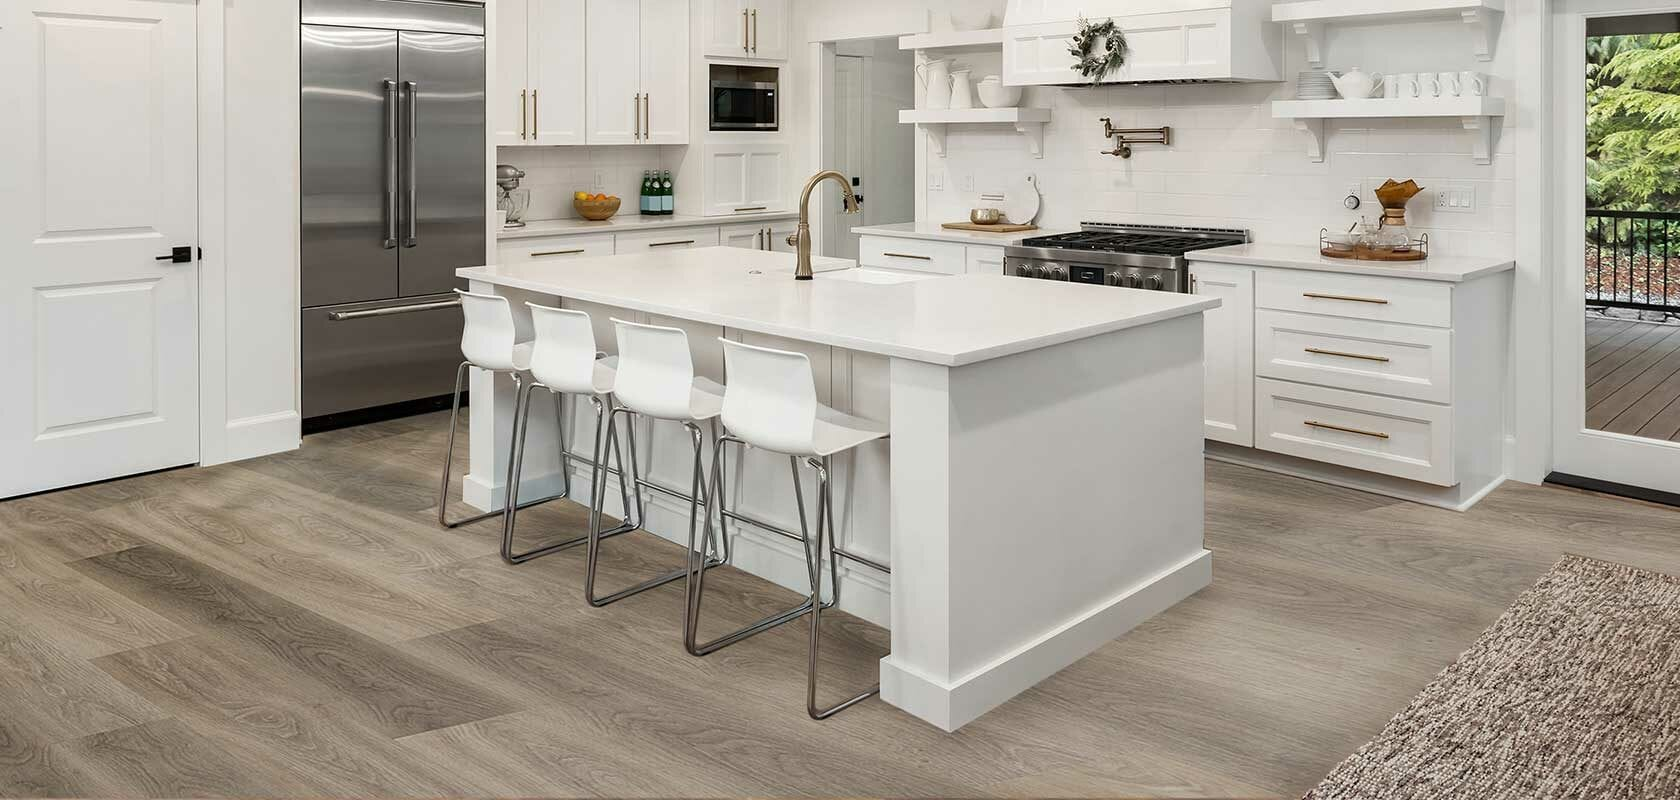 flooring trends 2021 featuring a kitchen with waterproof flooring